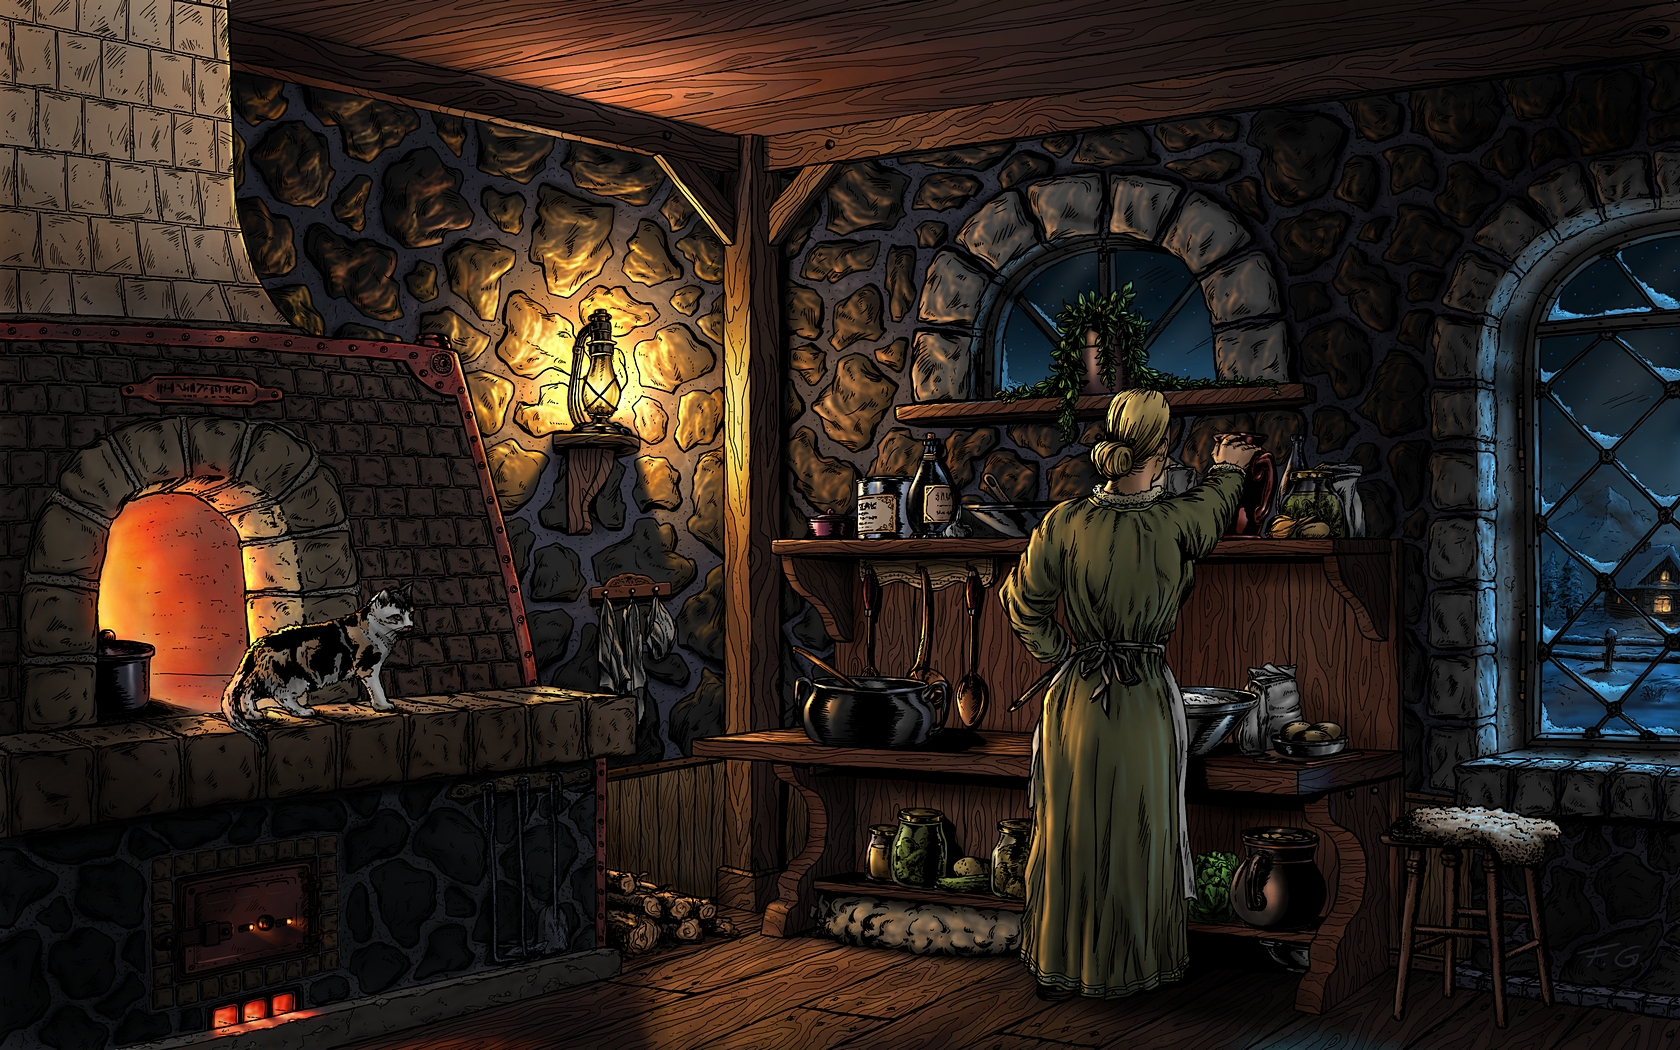 Evening in the old kitchen by Fel-X